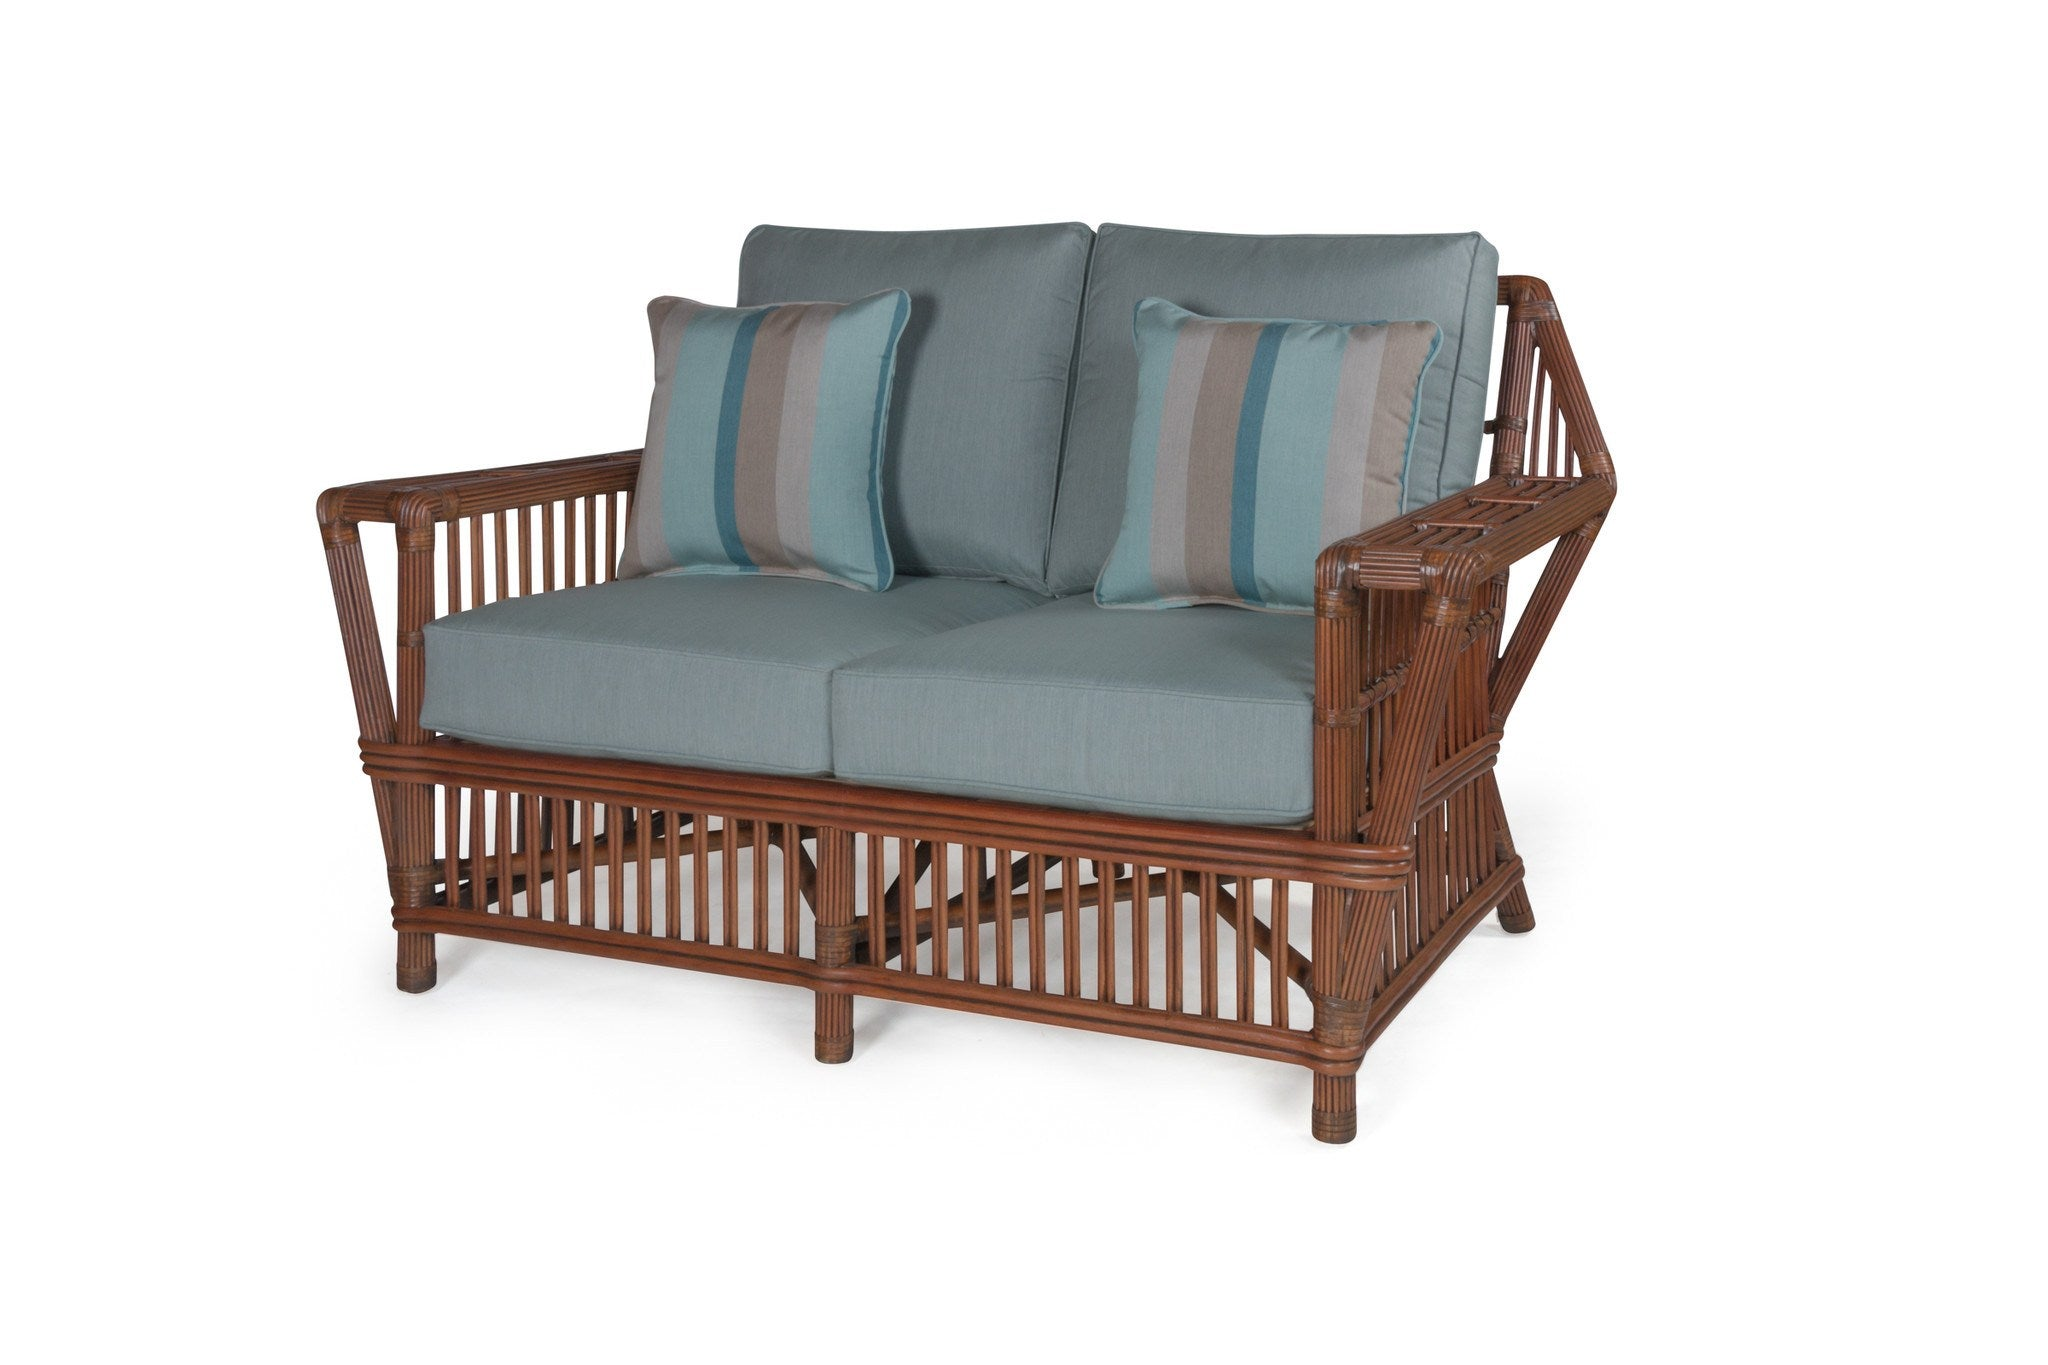 Williamsburg Wicker Loveseat By Designer From Tribor Rattan Imports